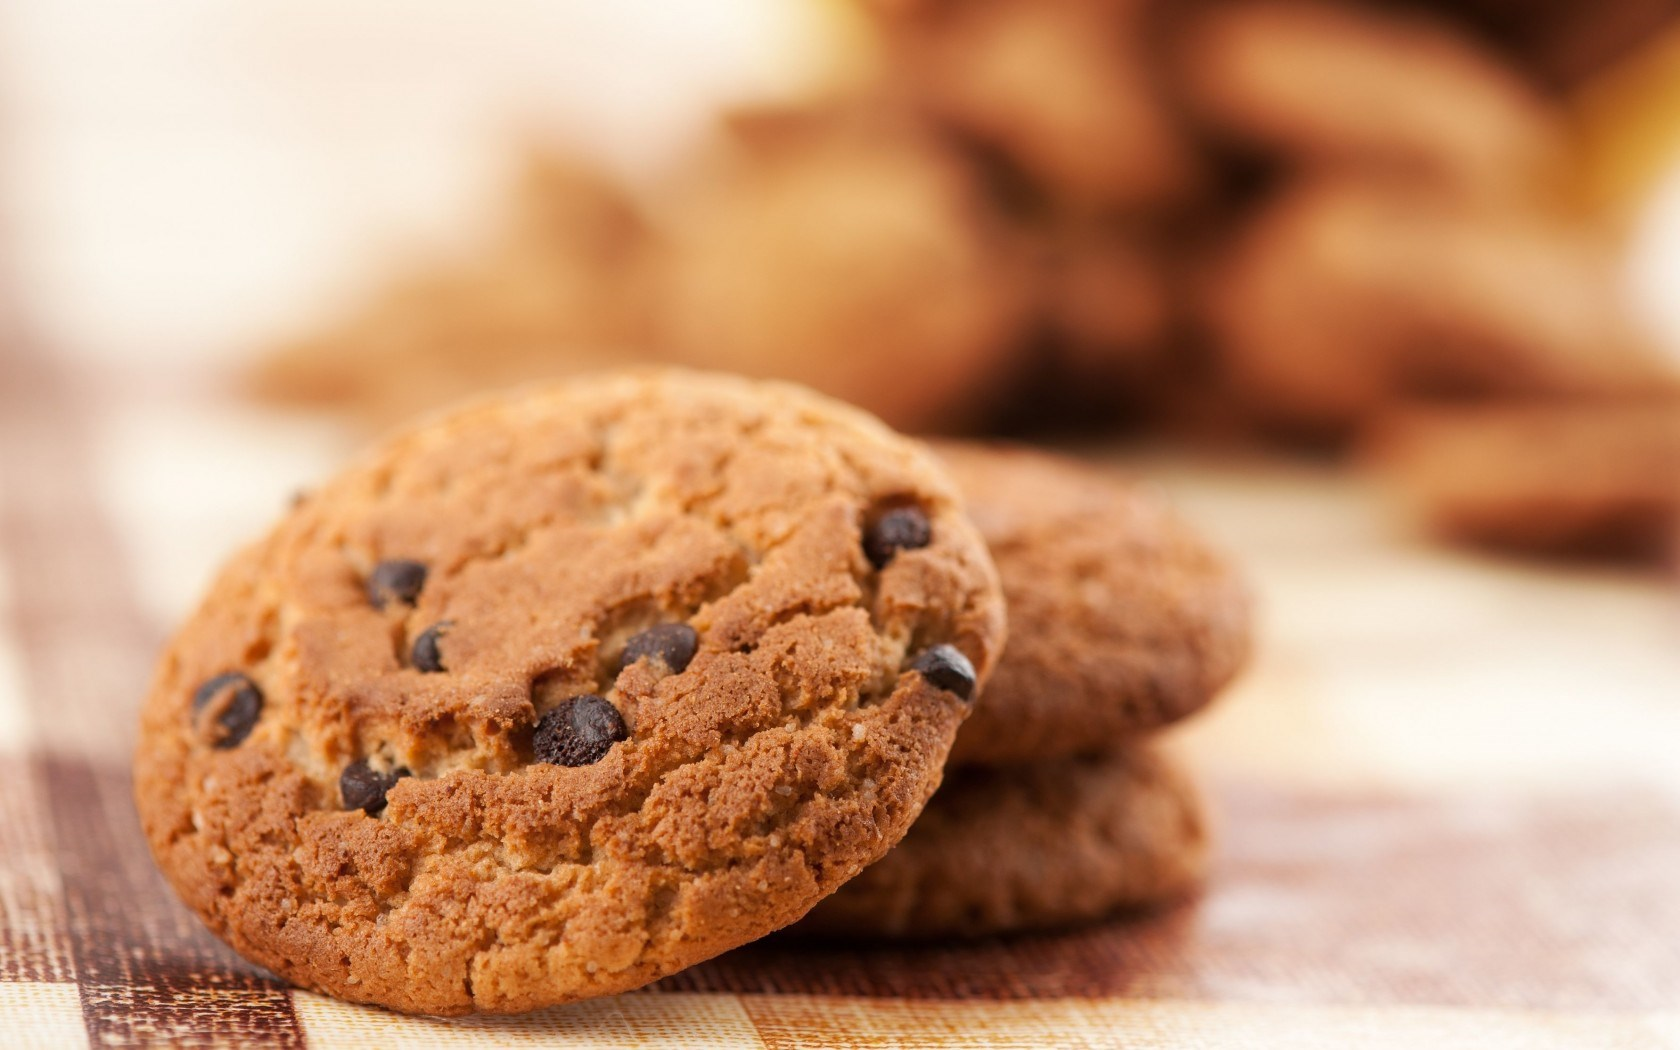 Food Biscuits Chocolate Chips HD Wallpaper